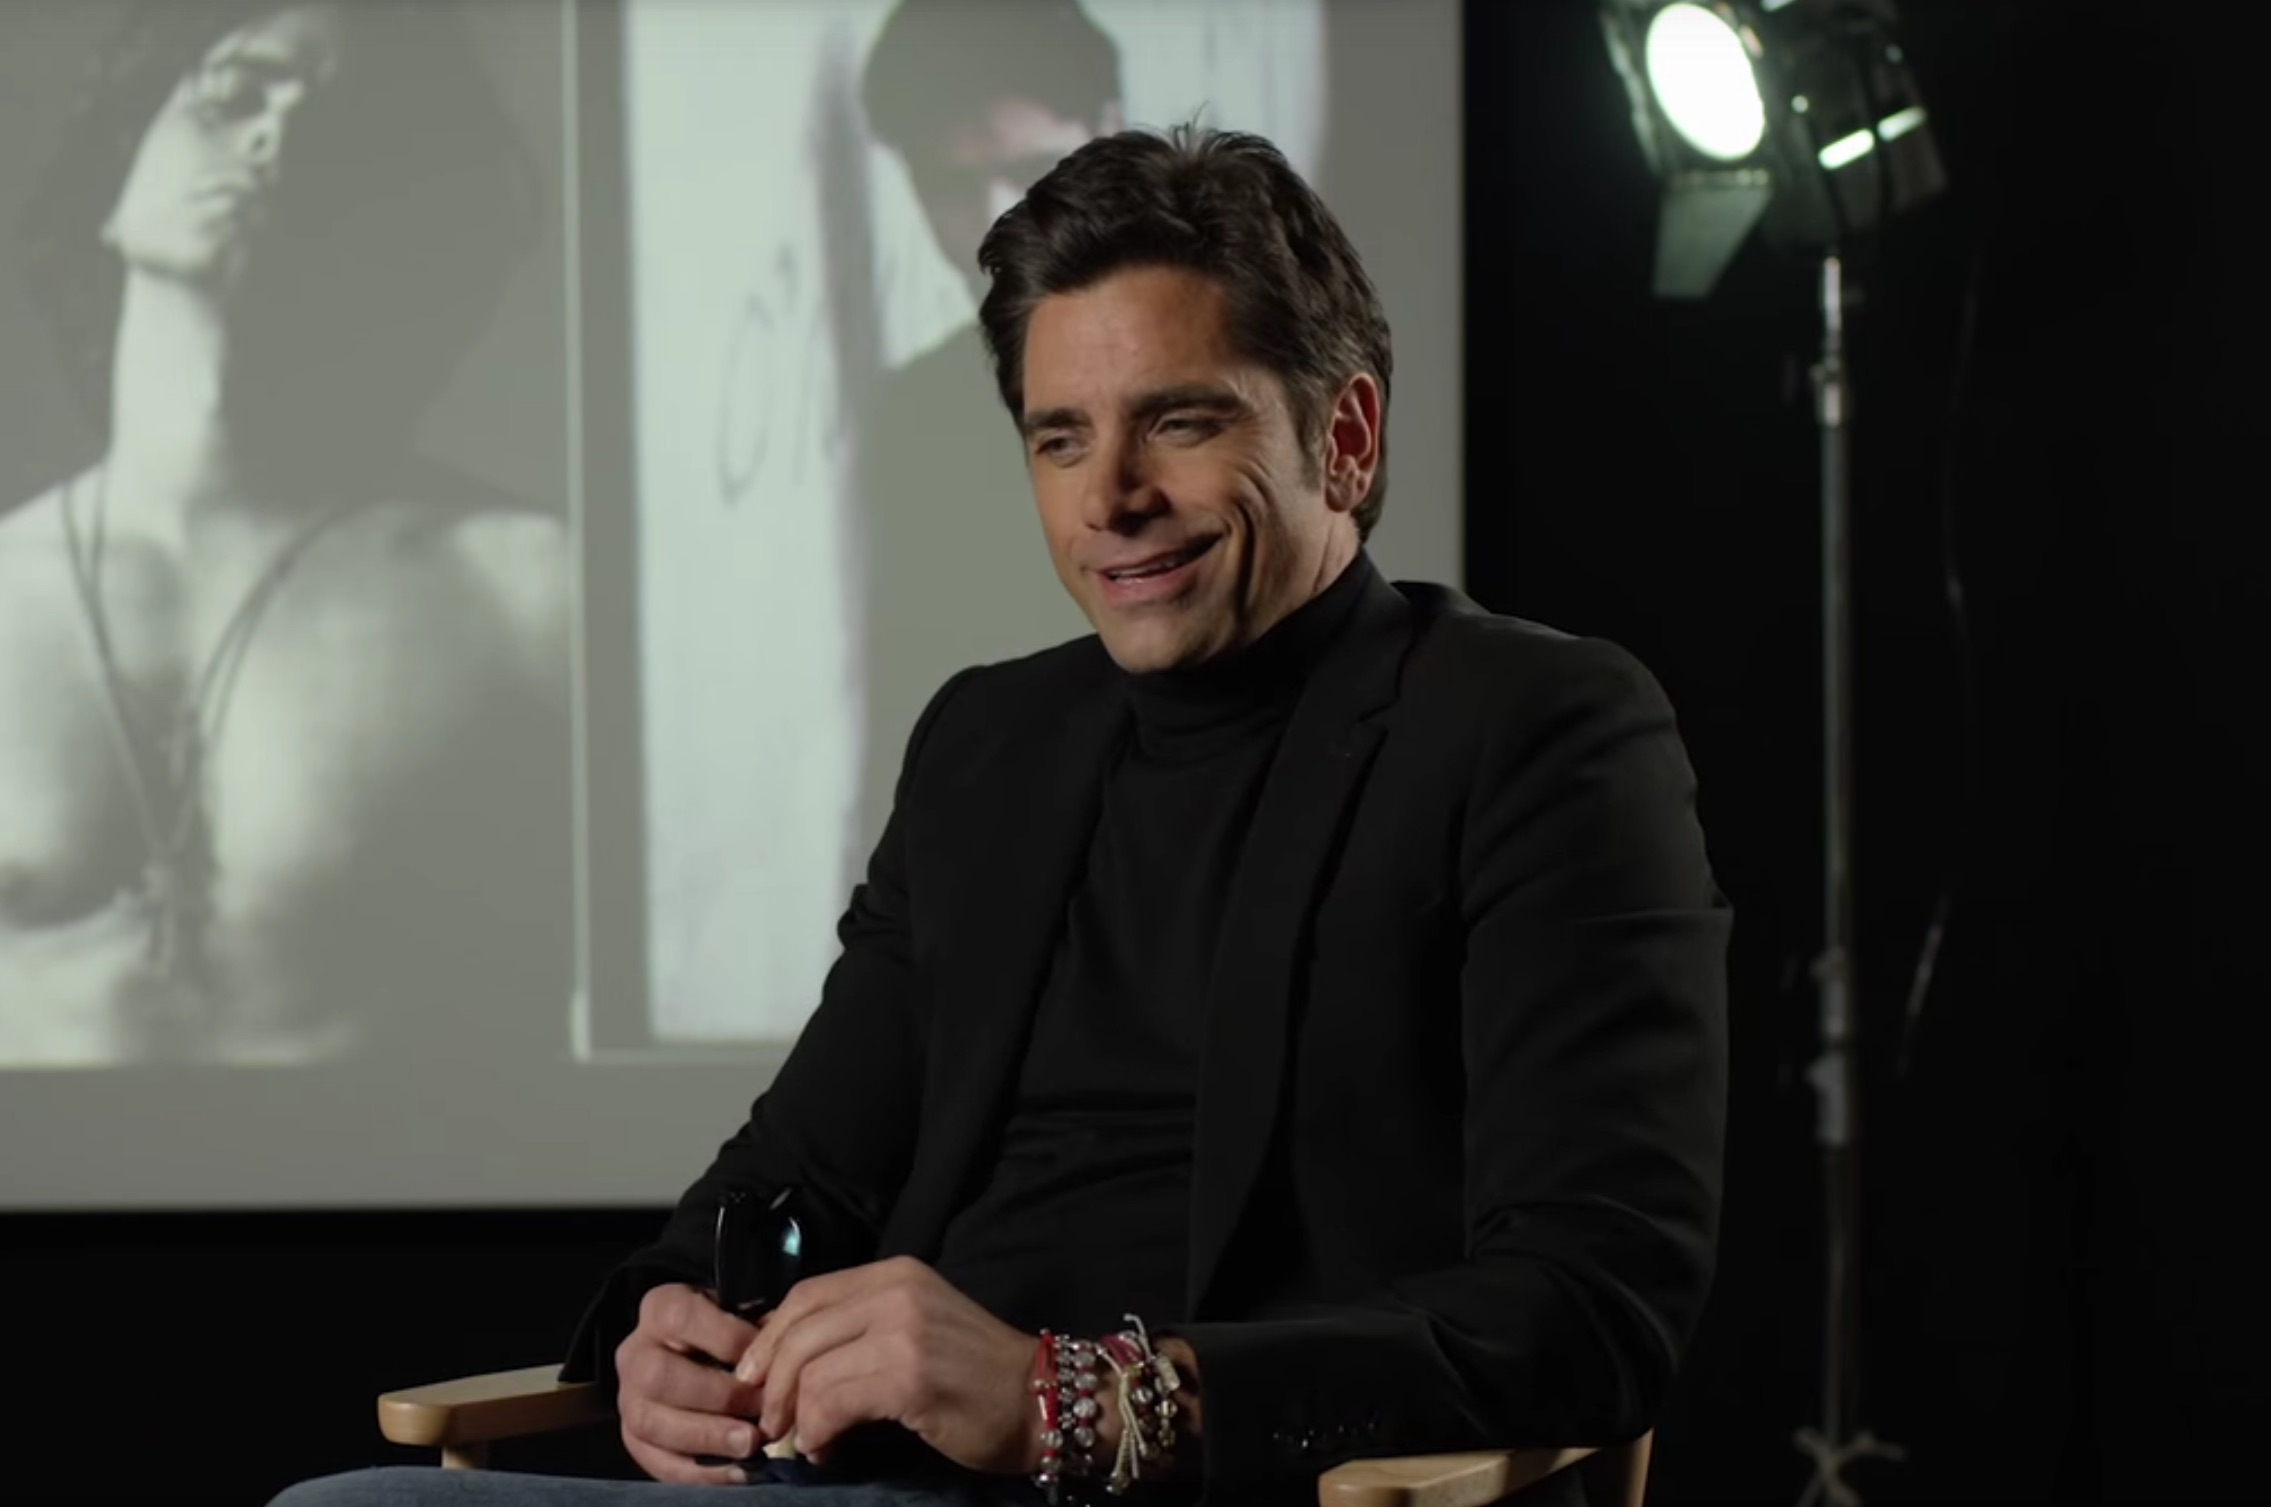 John Stamos is John Stamos in the new Netflix Original movie, John Stamos: A Human, Being. Check out the trailer right here at ComingSoon.net.